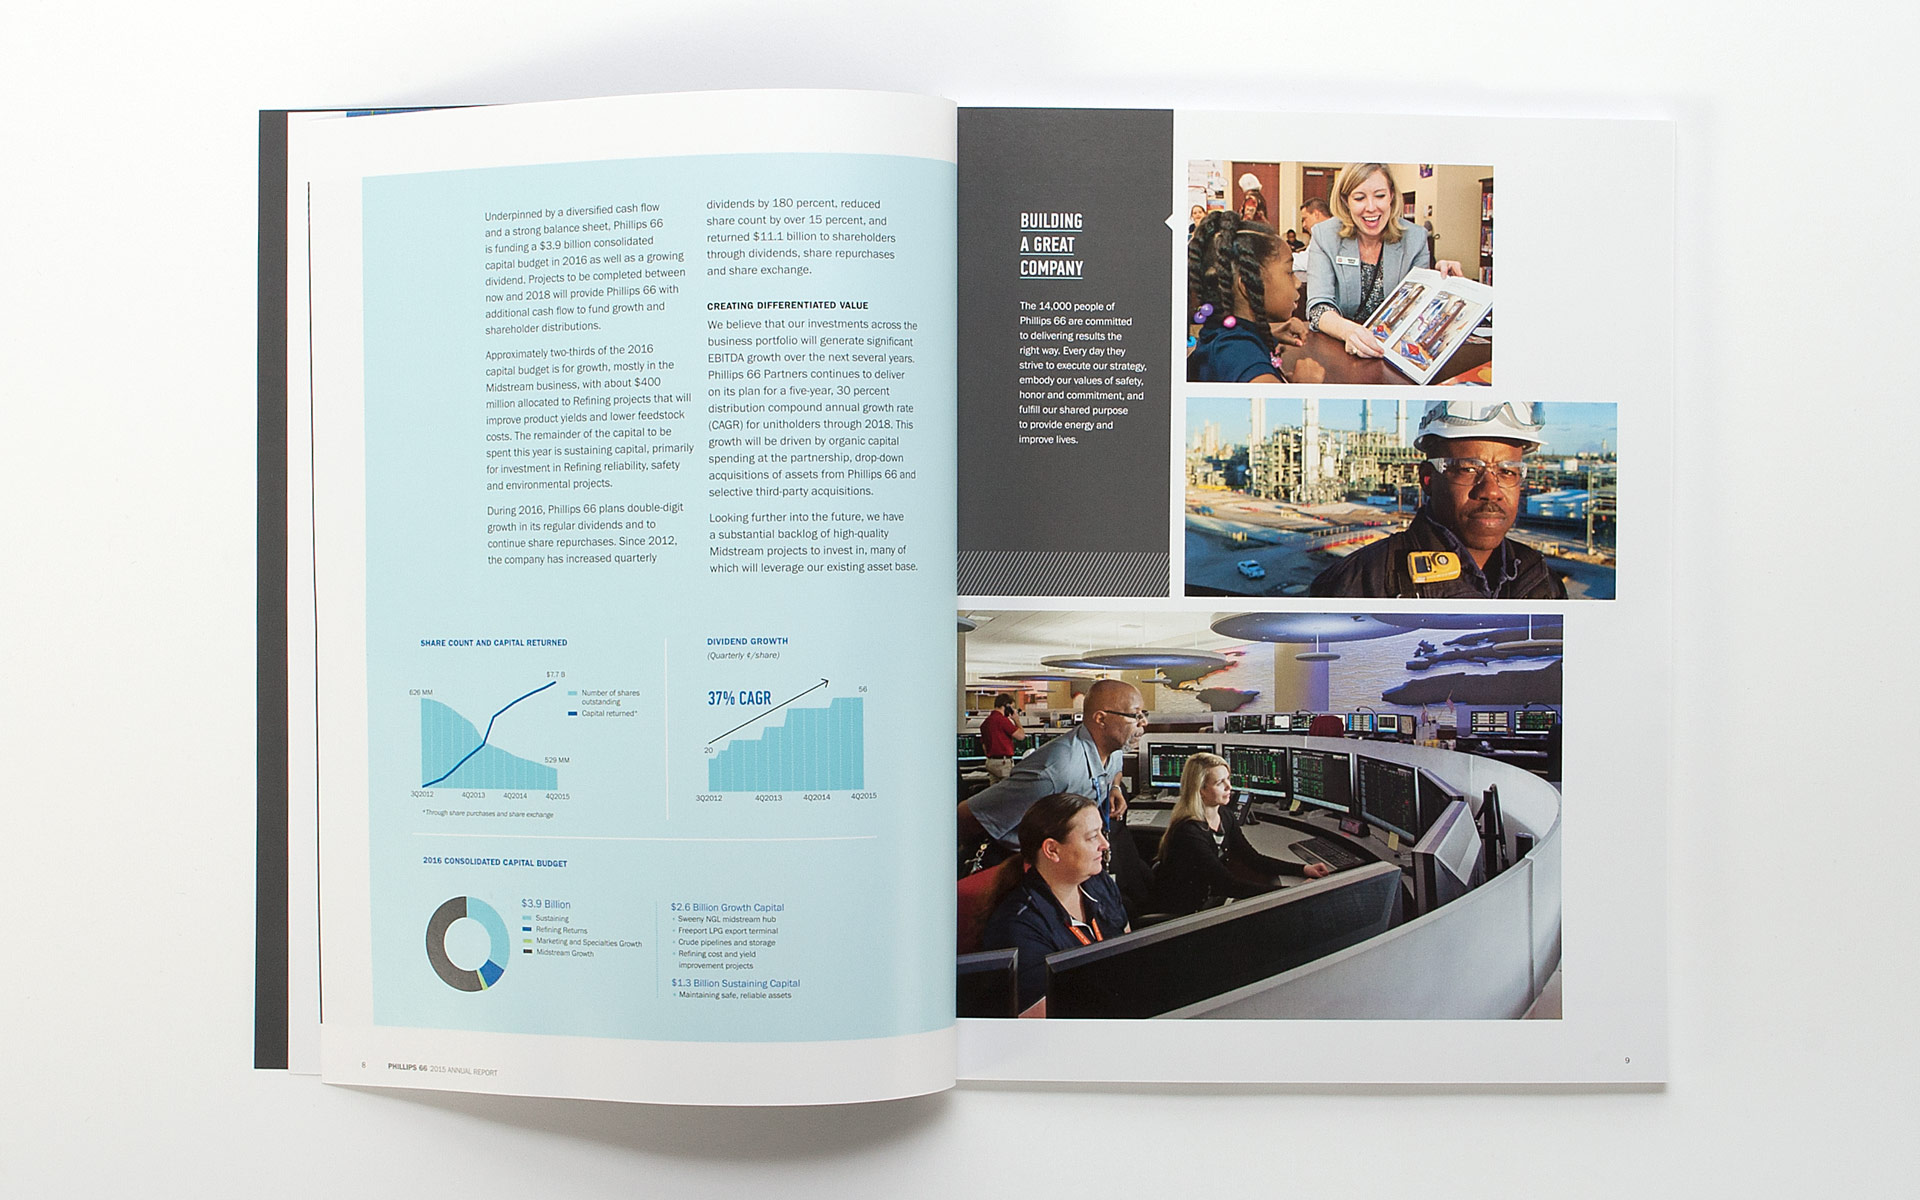 Phillips 66 2015 Annual Report spread 5